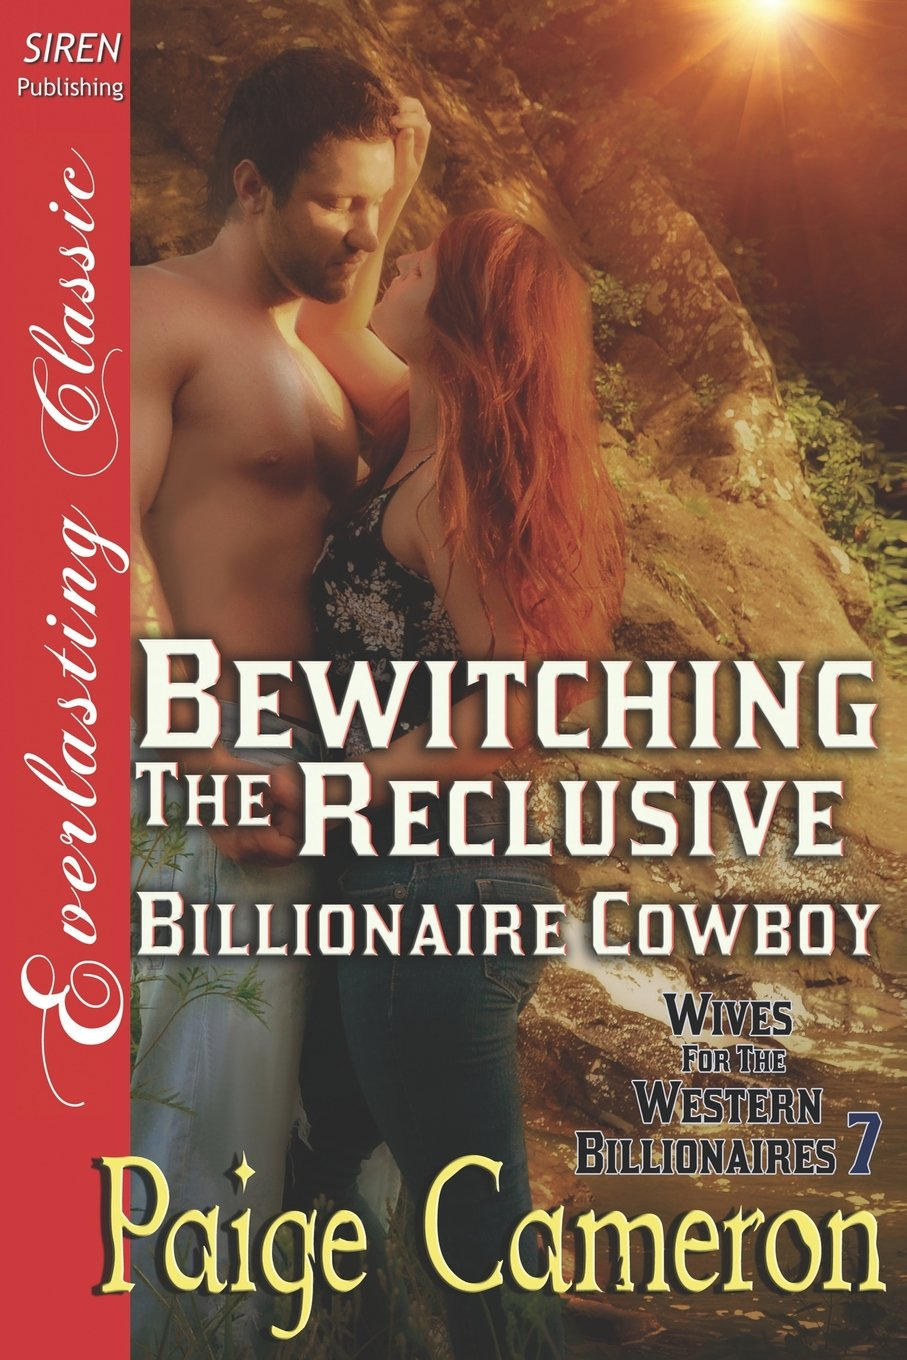 Read Online Bewitching the Reclusive Billionaire Cowboy [Wives for the Western Billionaires 7] (Siren Publishing Everlasting Classic) (Wives for the Western Billionaires, Siren Publishing Everlasting Classic) pdf epub